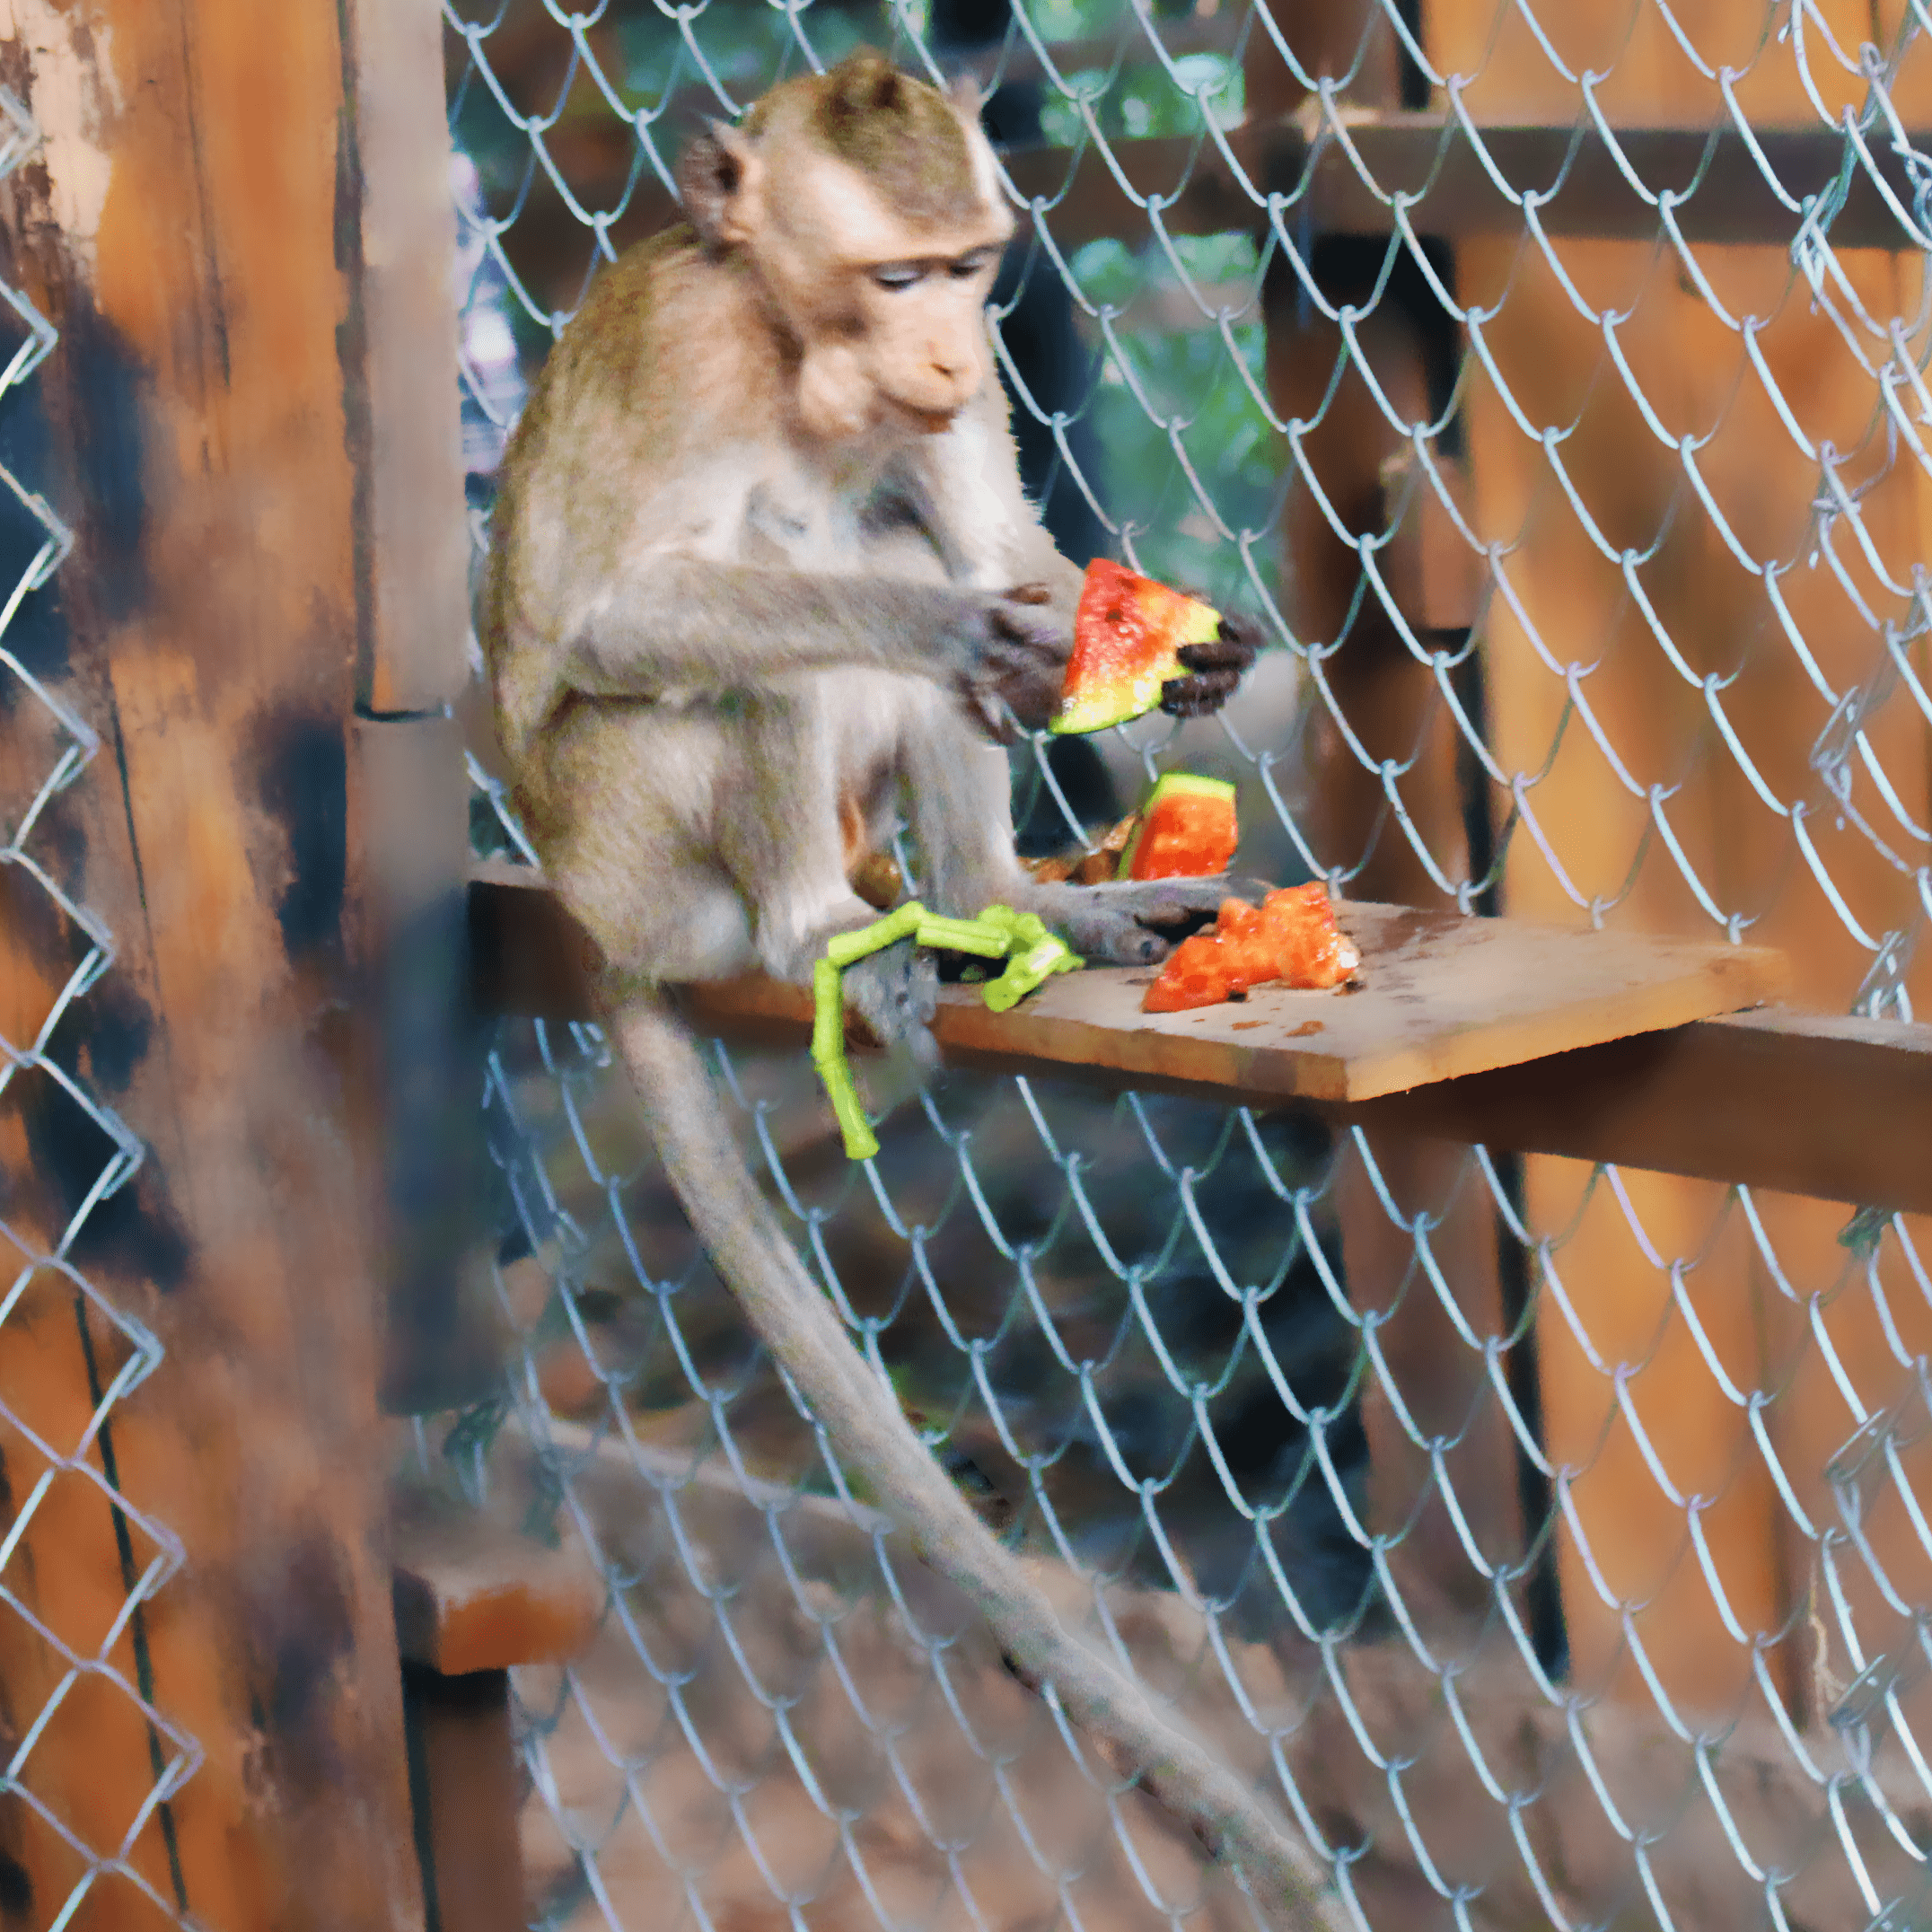 One of the monkeys eating watermelon.